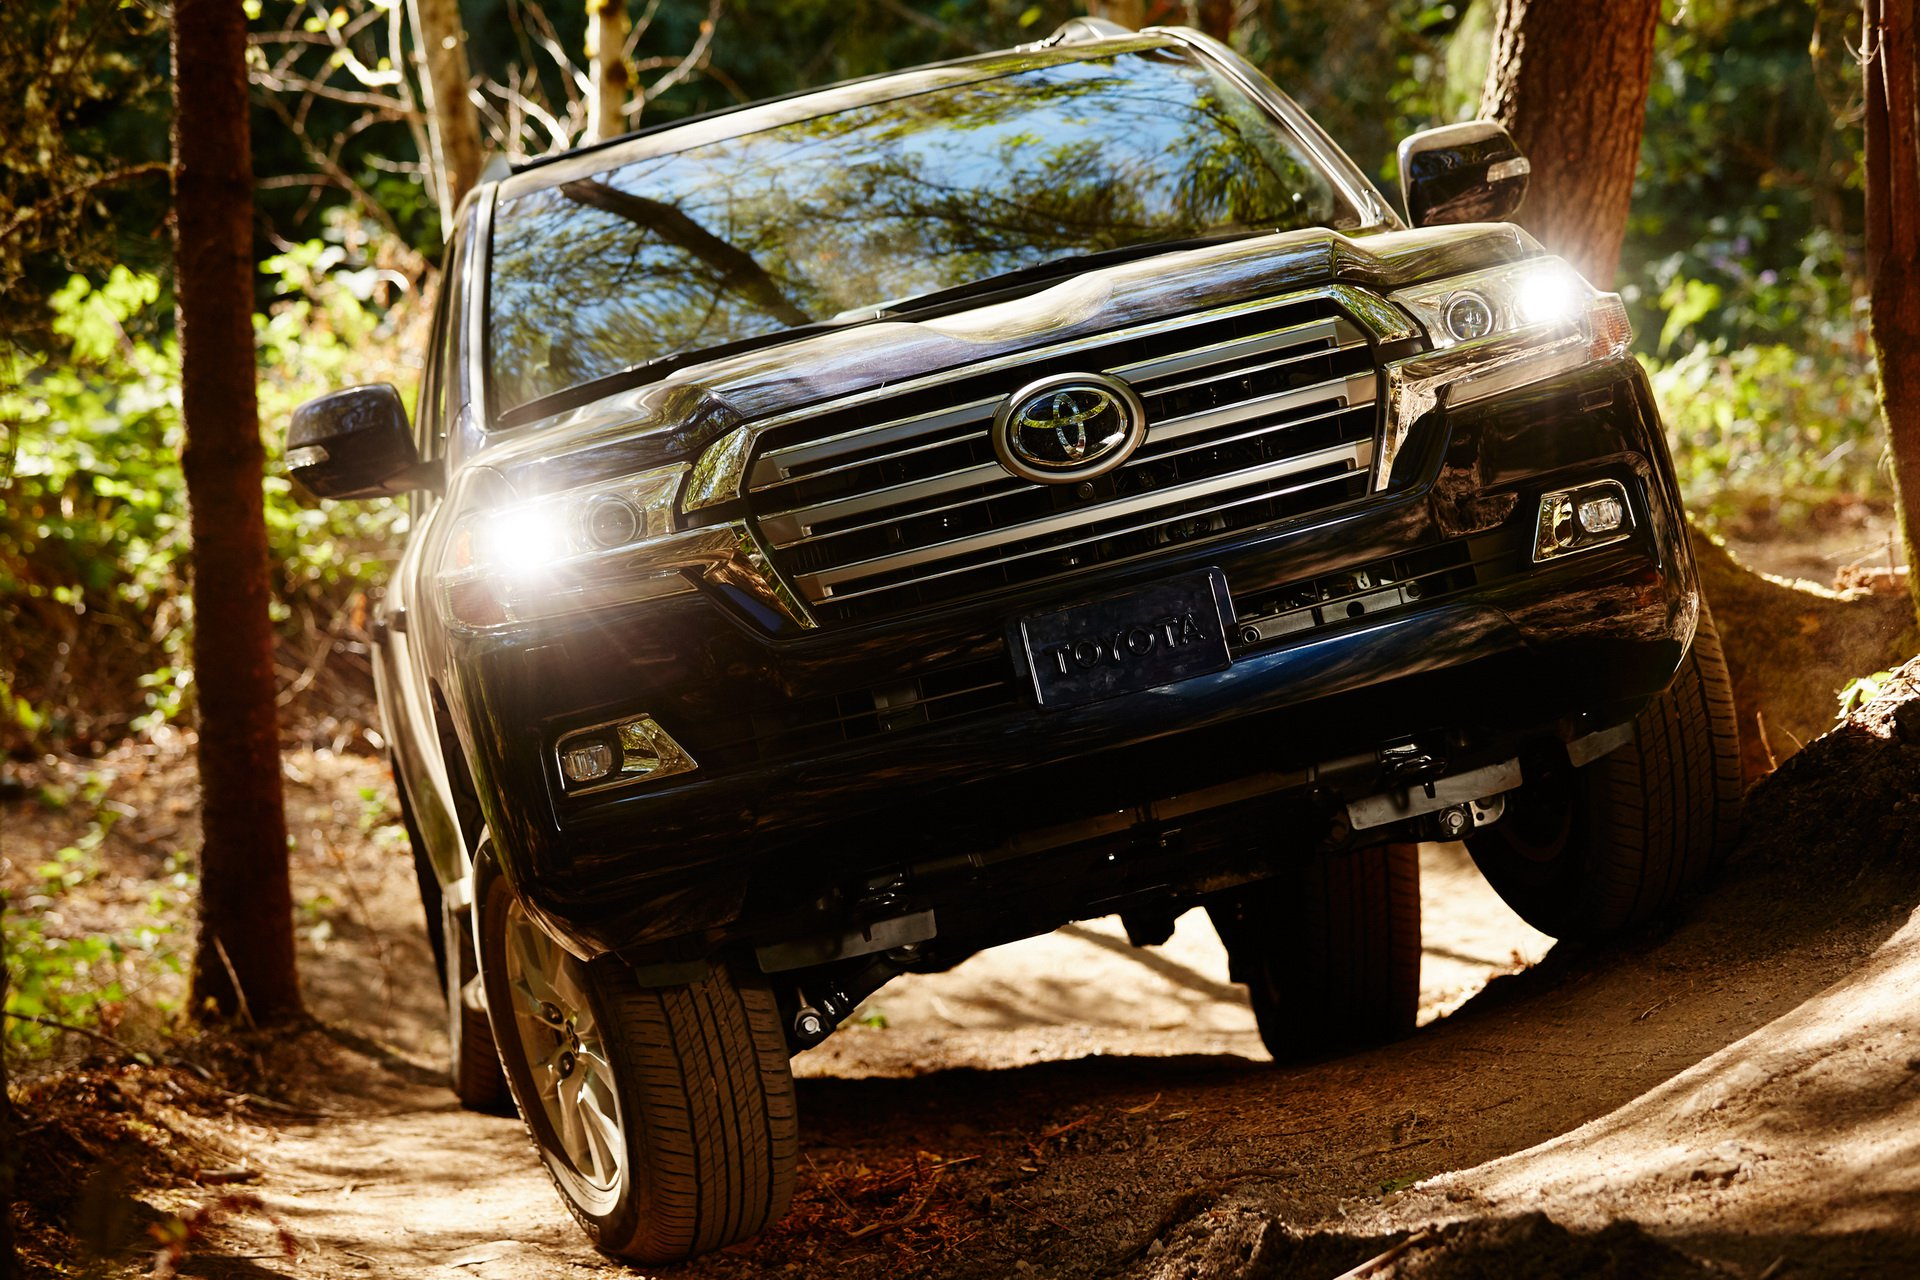 تويوتا لندكروزر 2019 (2019 Toyota Land Cruiser)